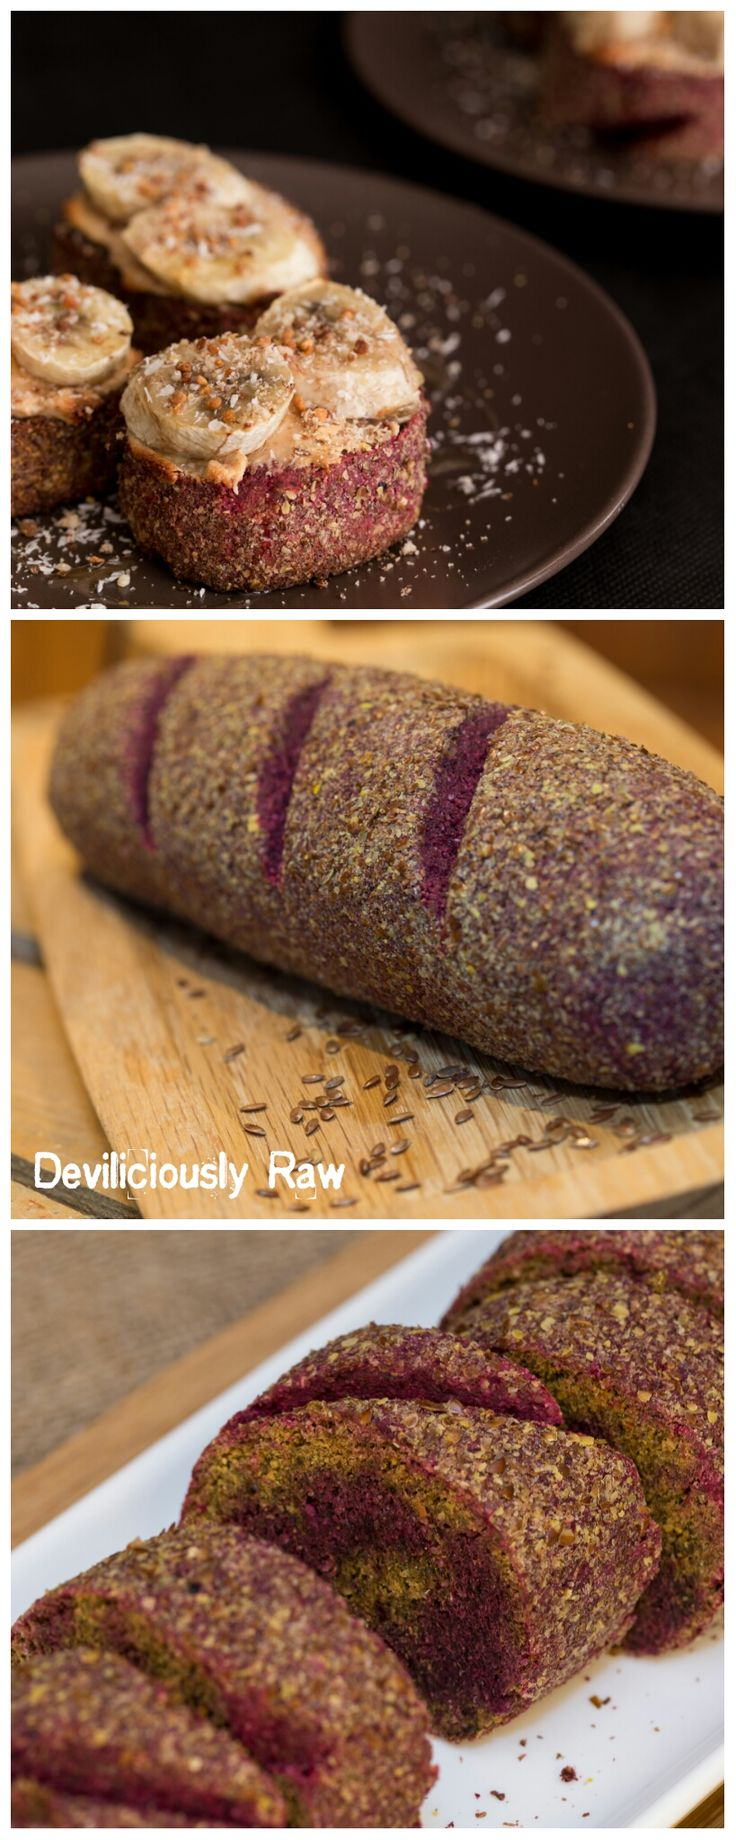 Raw Vegan Beetroot Bread Roll by Deviliciously Raw. The bread has a wonderful slightly nutty taste, crunchy on the outside, soft on the inside with a delightful flavour that is gluten-free and oil-free as well!  Full of healthy goodness, and smells like happiness, what more can you ask of a raw bread. A good alternative to bread for sandwiches.